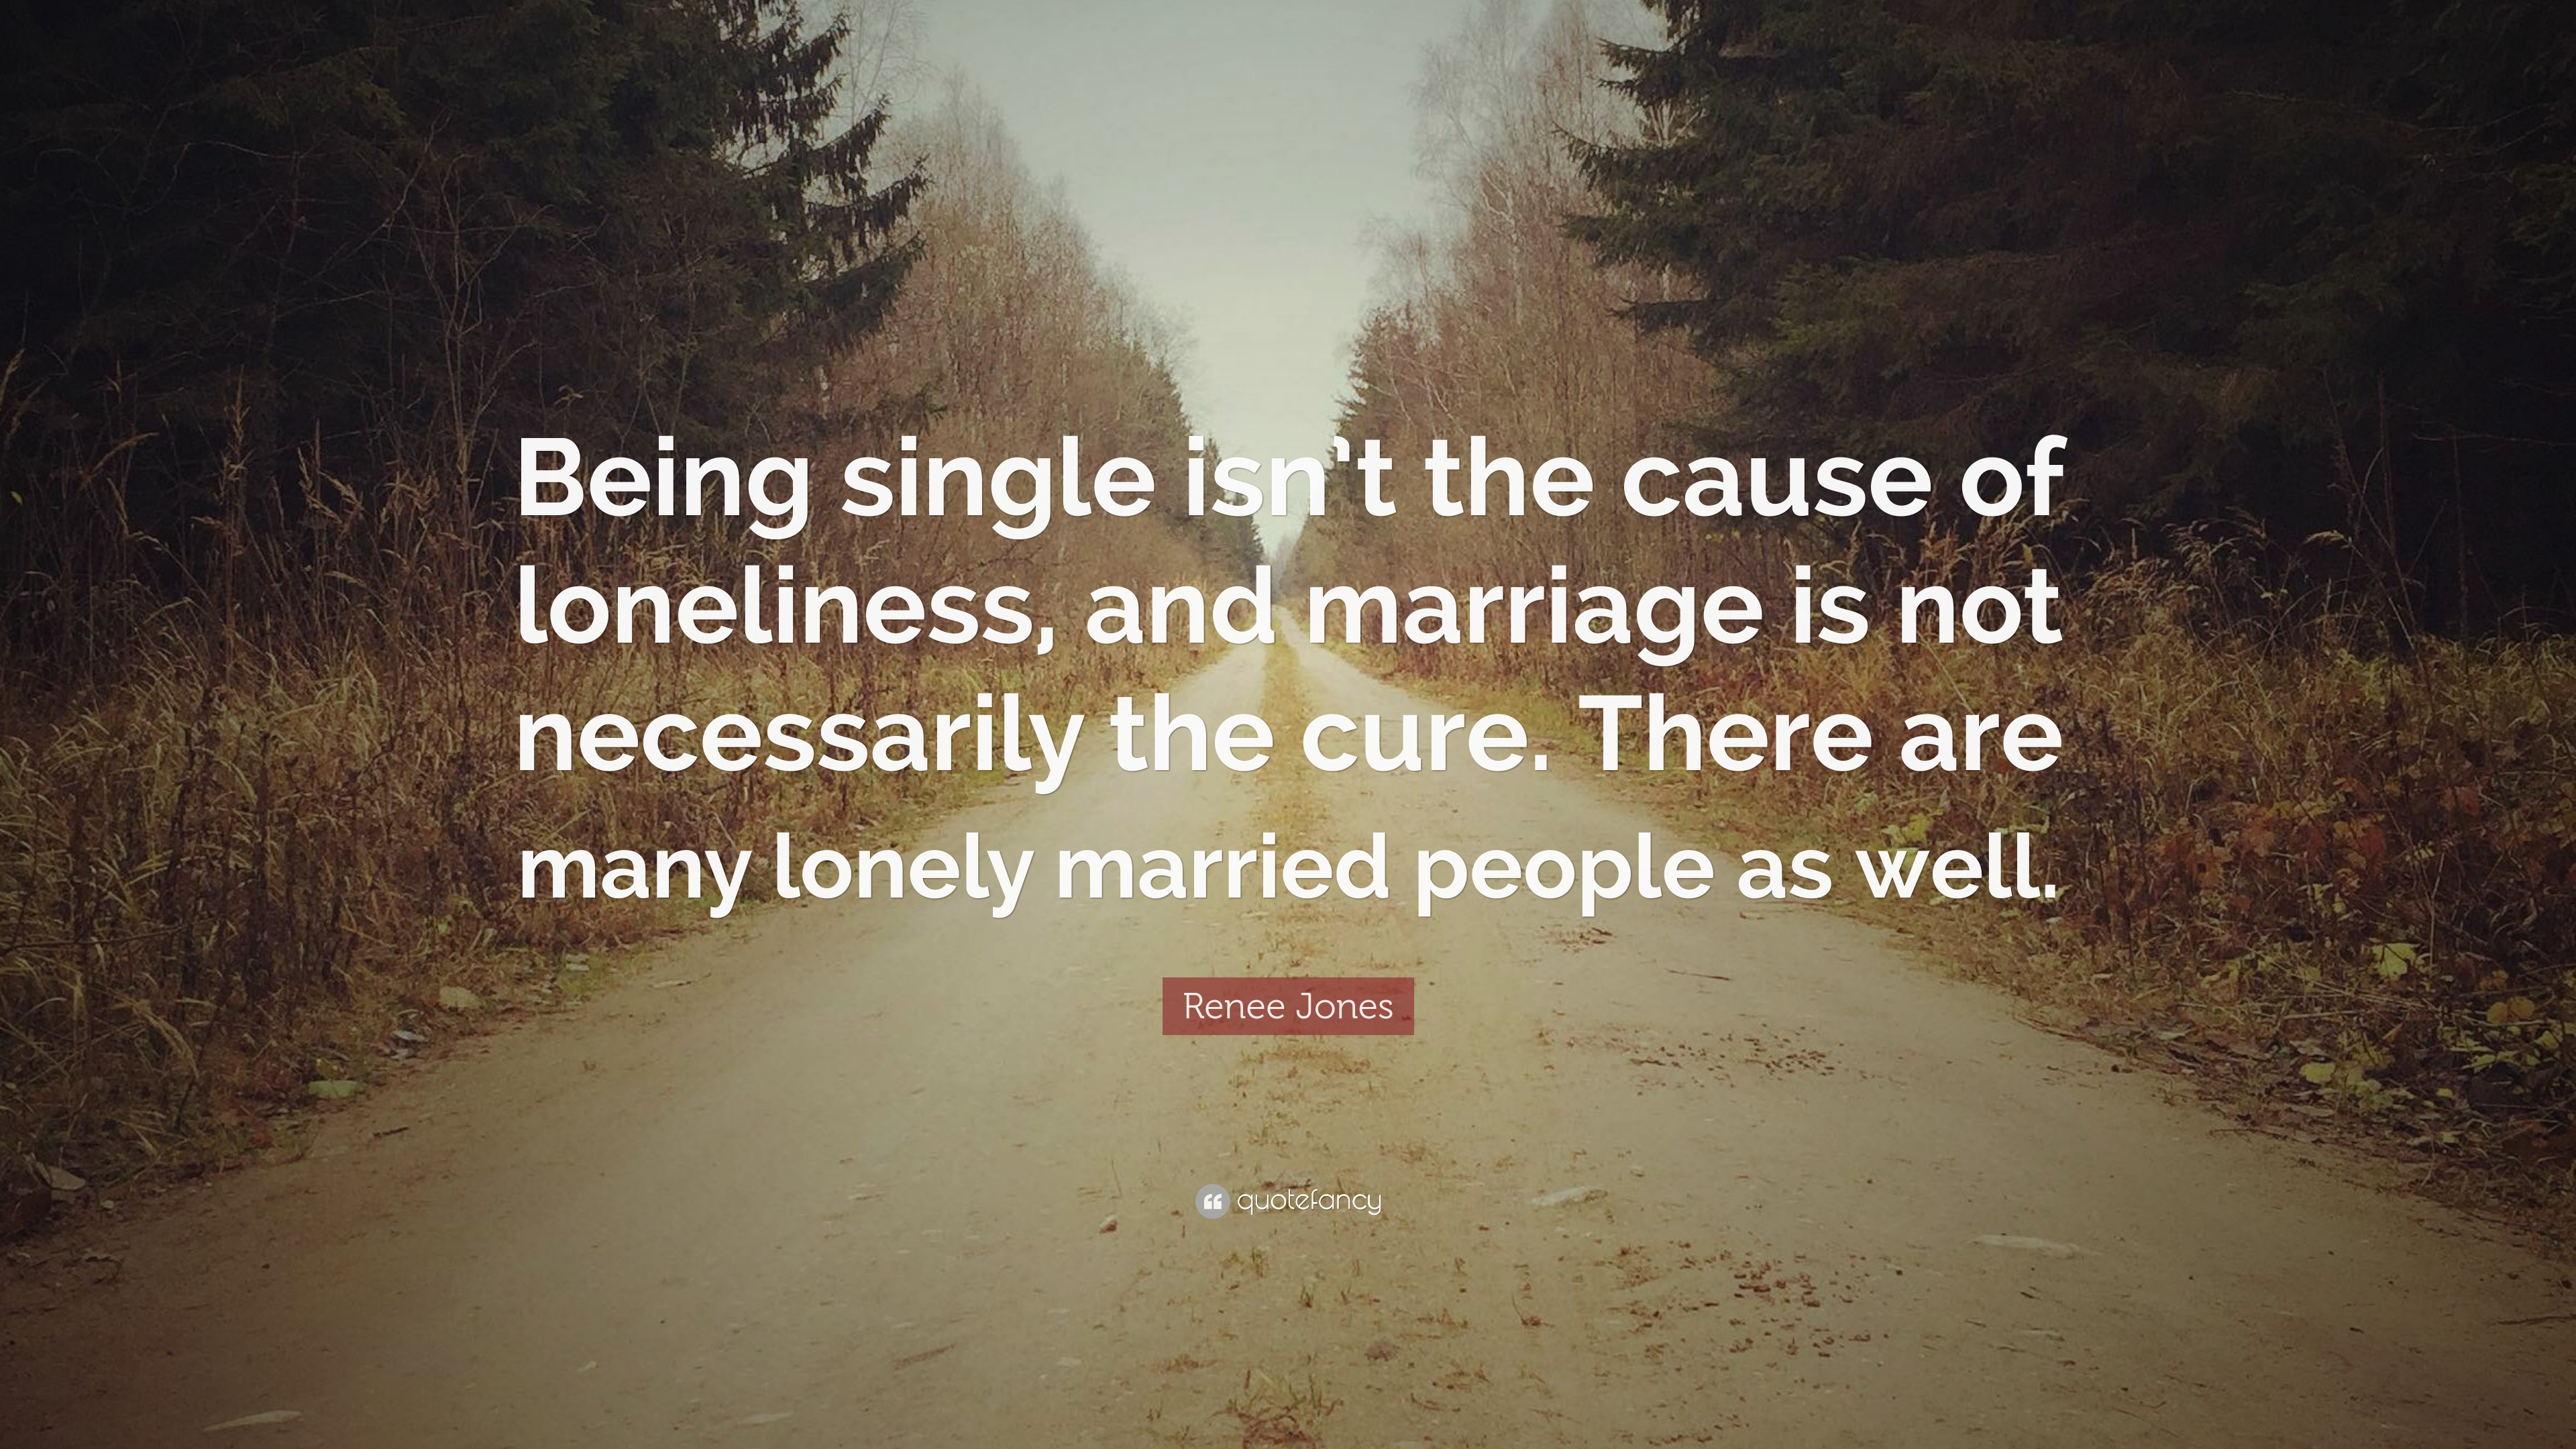 cures for loneliness single